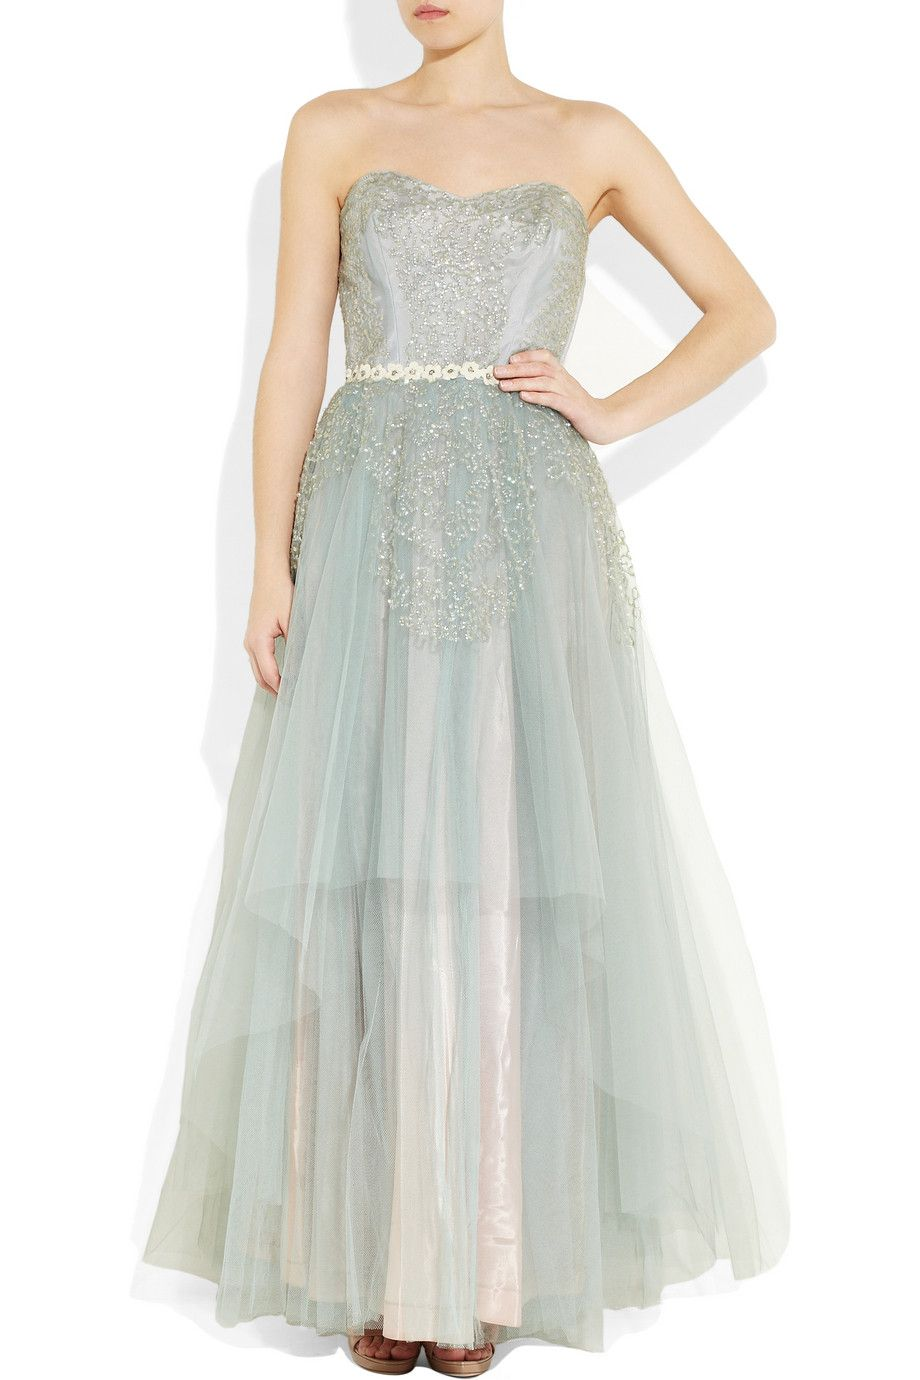 One Vintage | Lavern dress | Winter ball-gown | Clothes | Pinterest ...